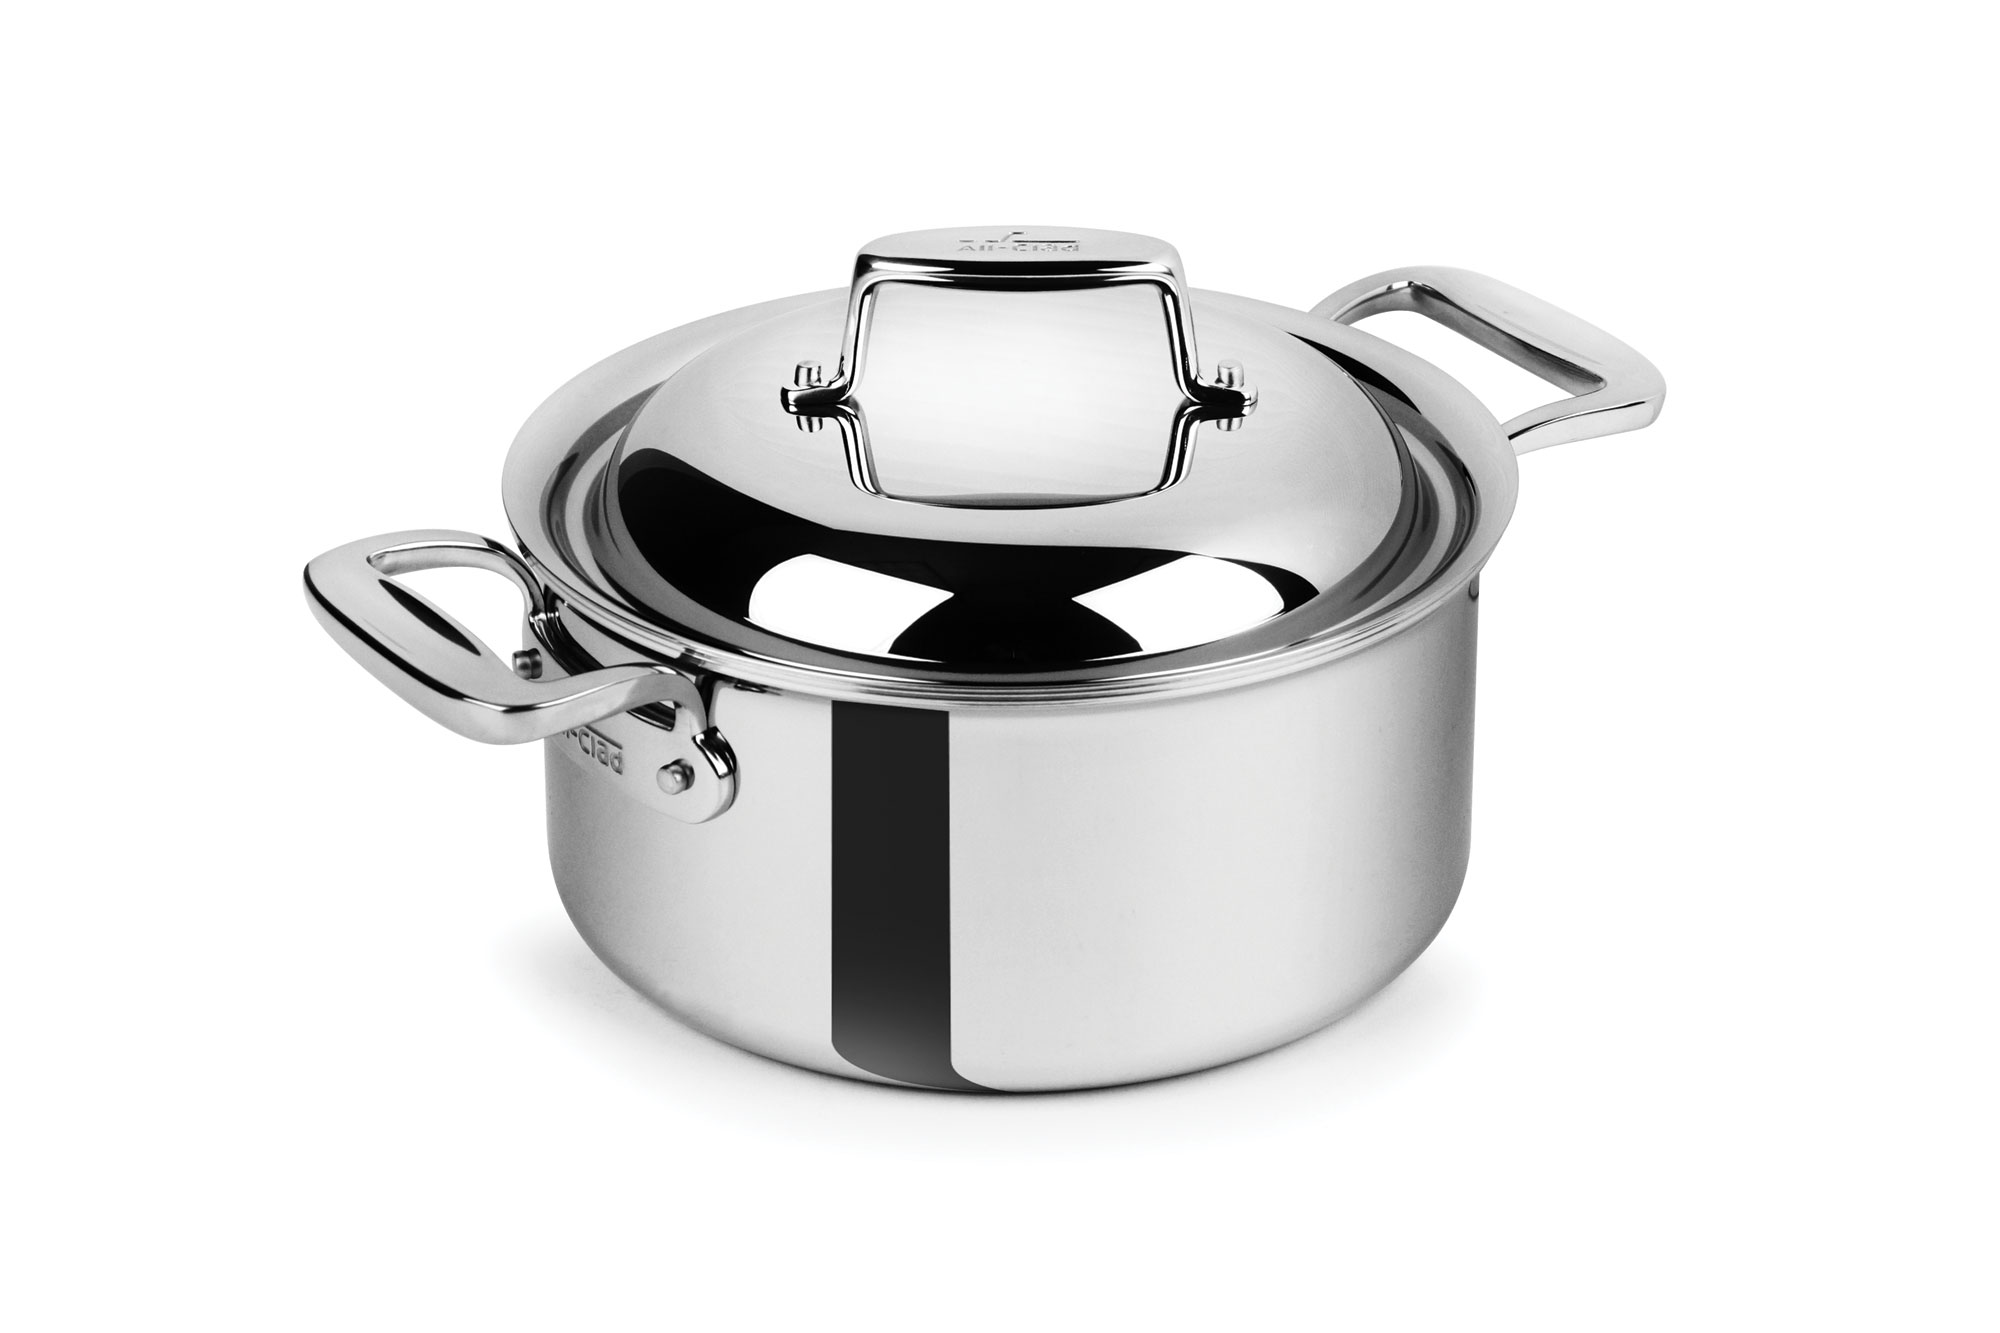 kitchen mandoline trash cans with lids all-clad d7 stainless steel round dutch oven, 3.5-quart ...